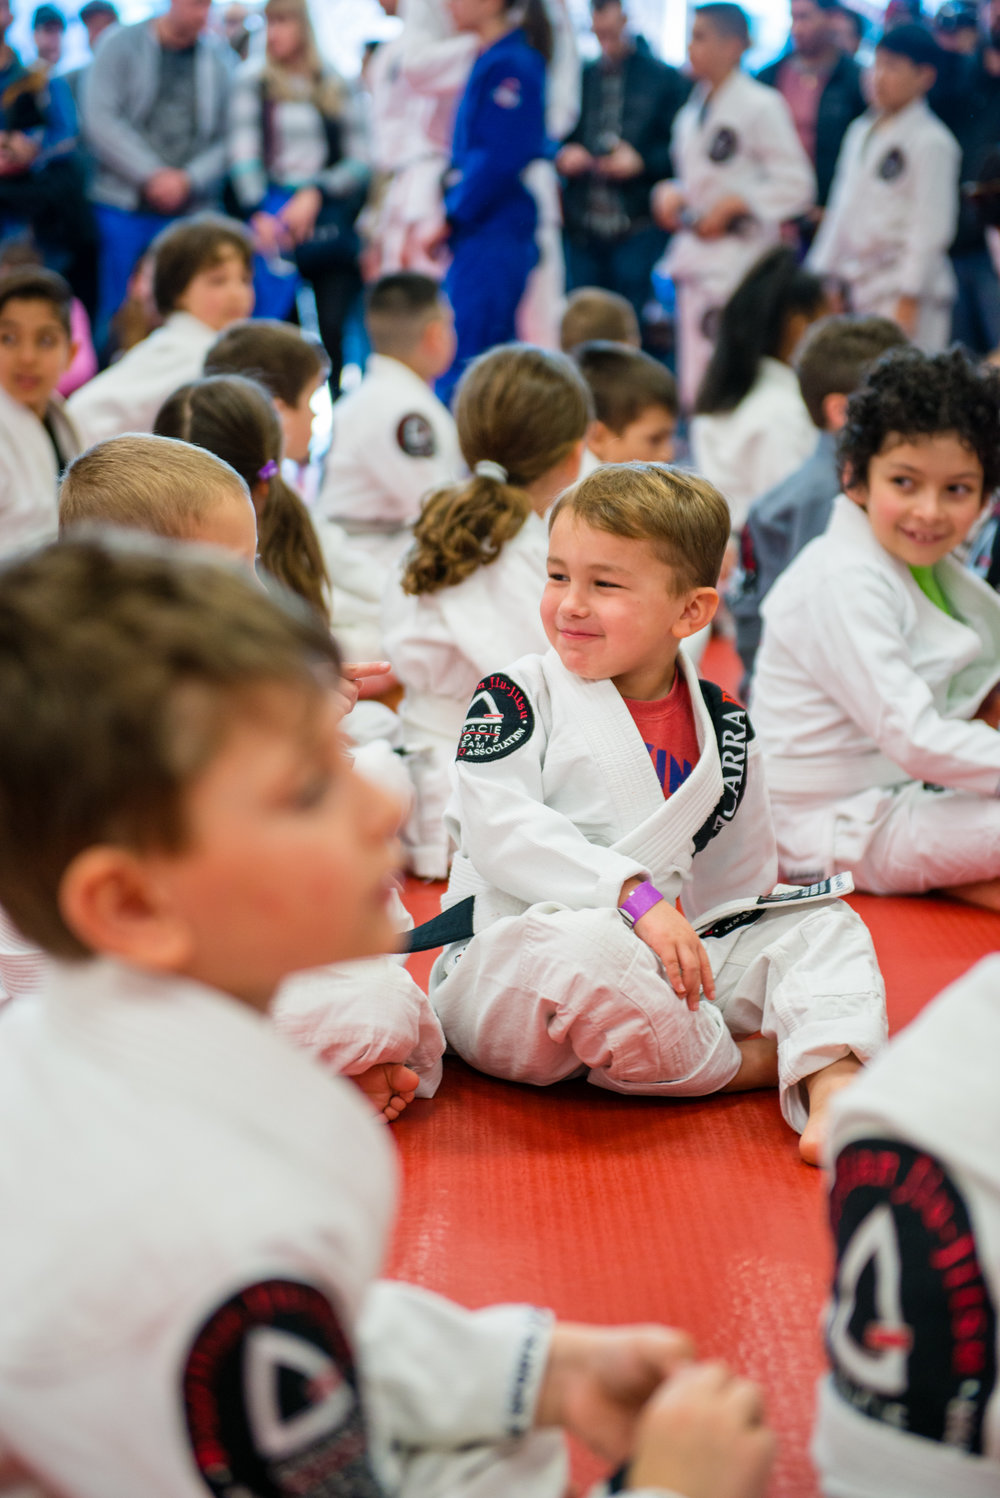 Gracie-Sports-Kids-14.jpg